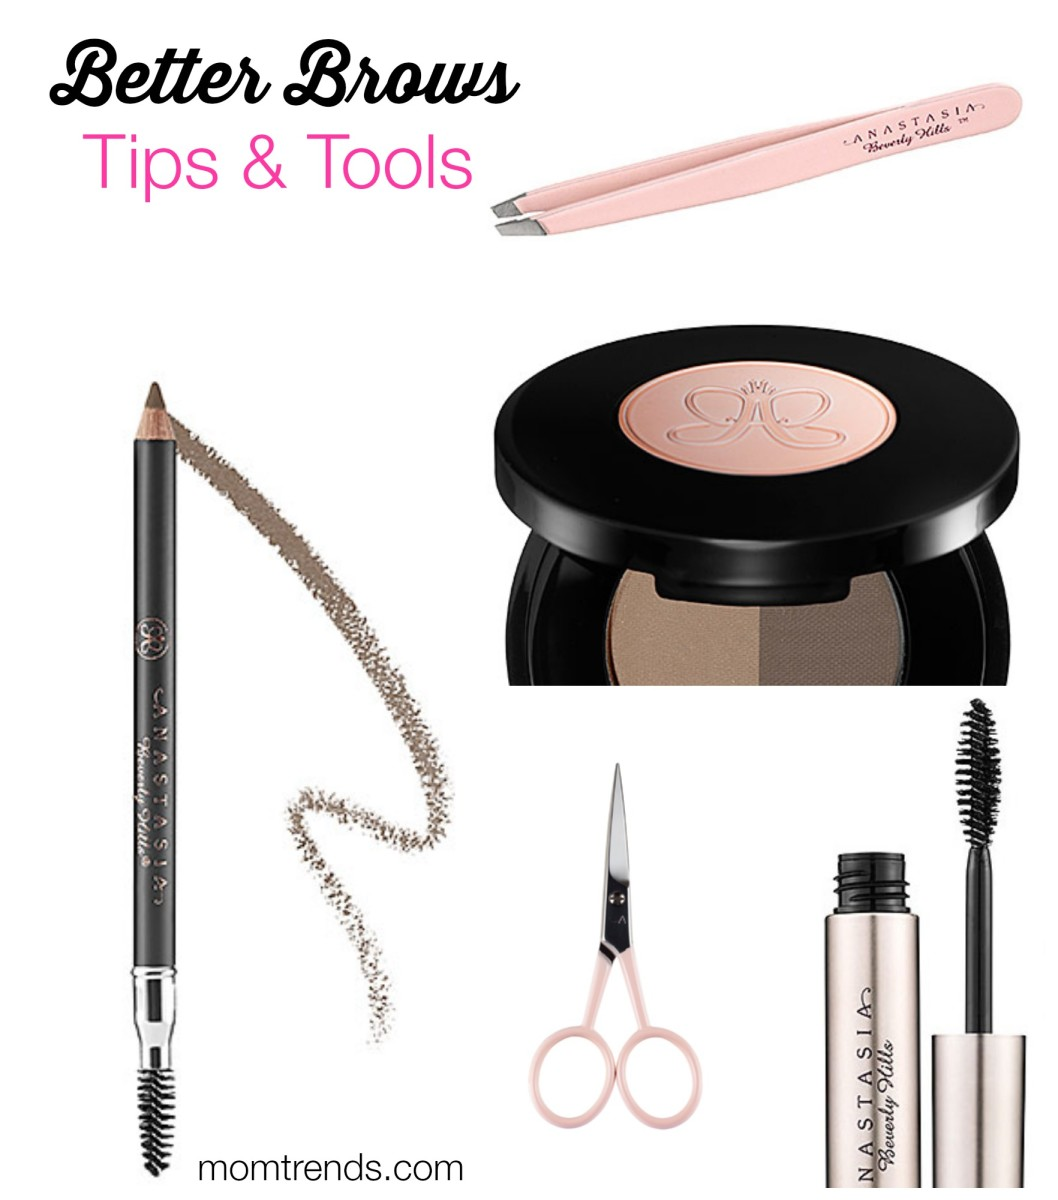 get better brows, beauty for moms, beauty tips